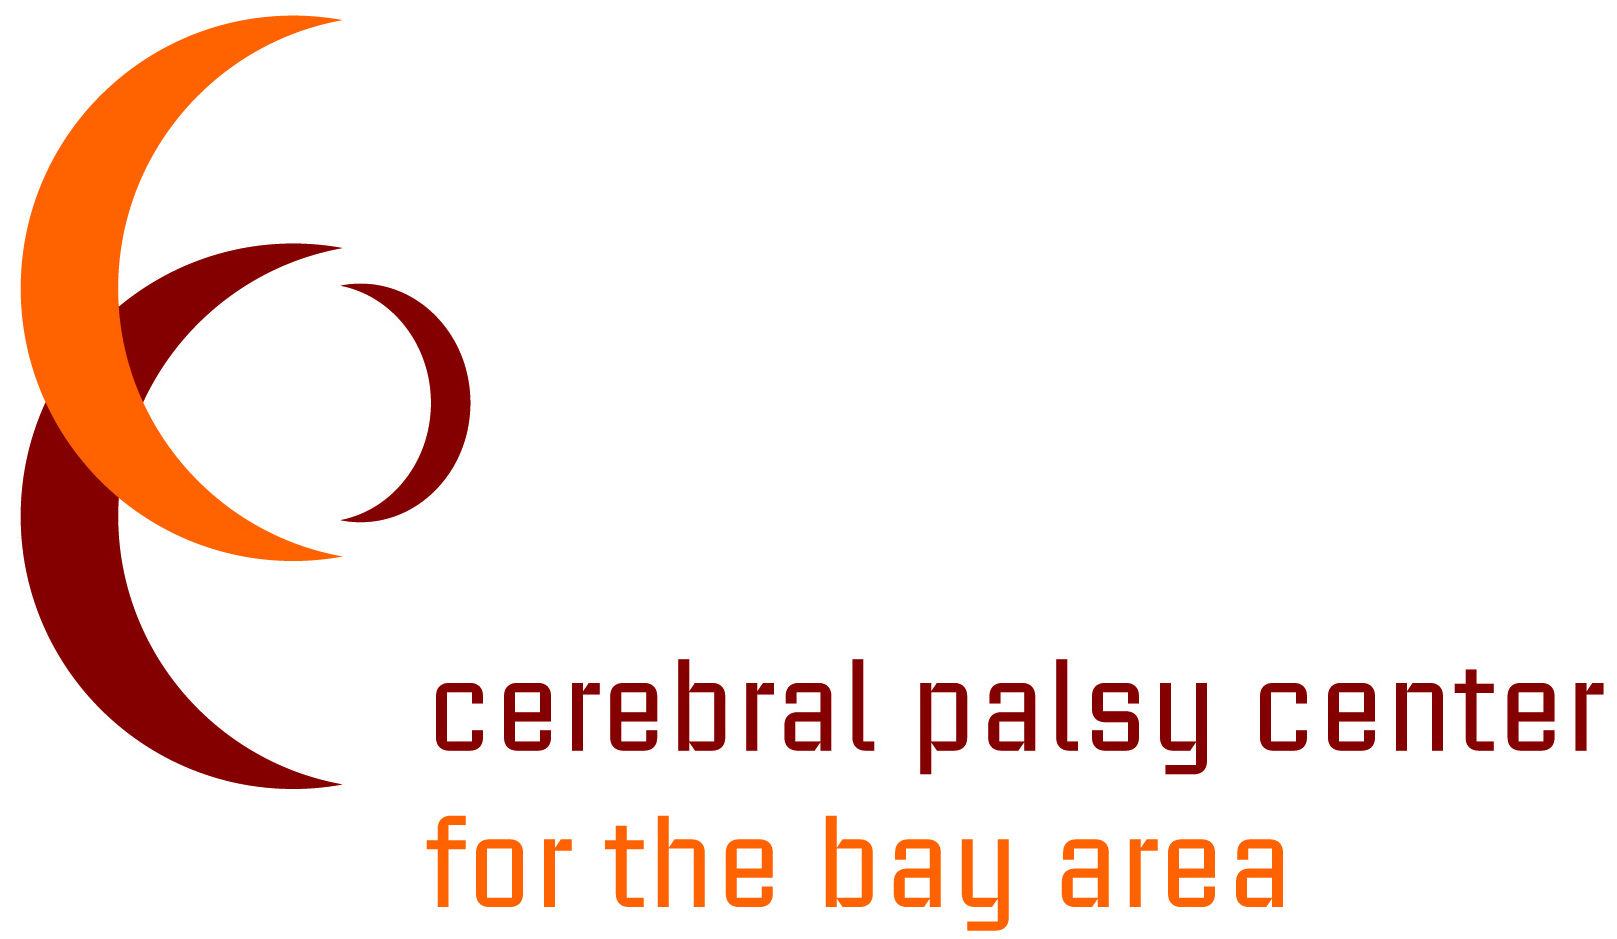 Cerebral Palsy Center for the Bay Area, Oakland, CA logo